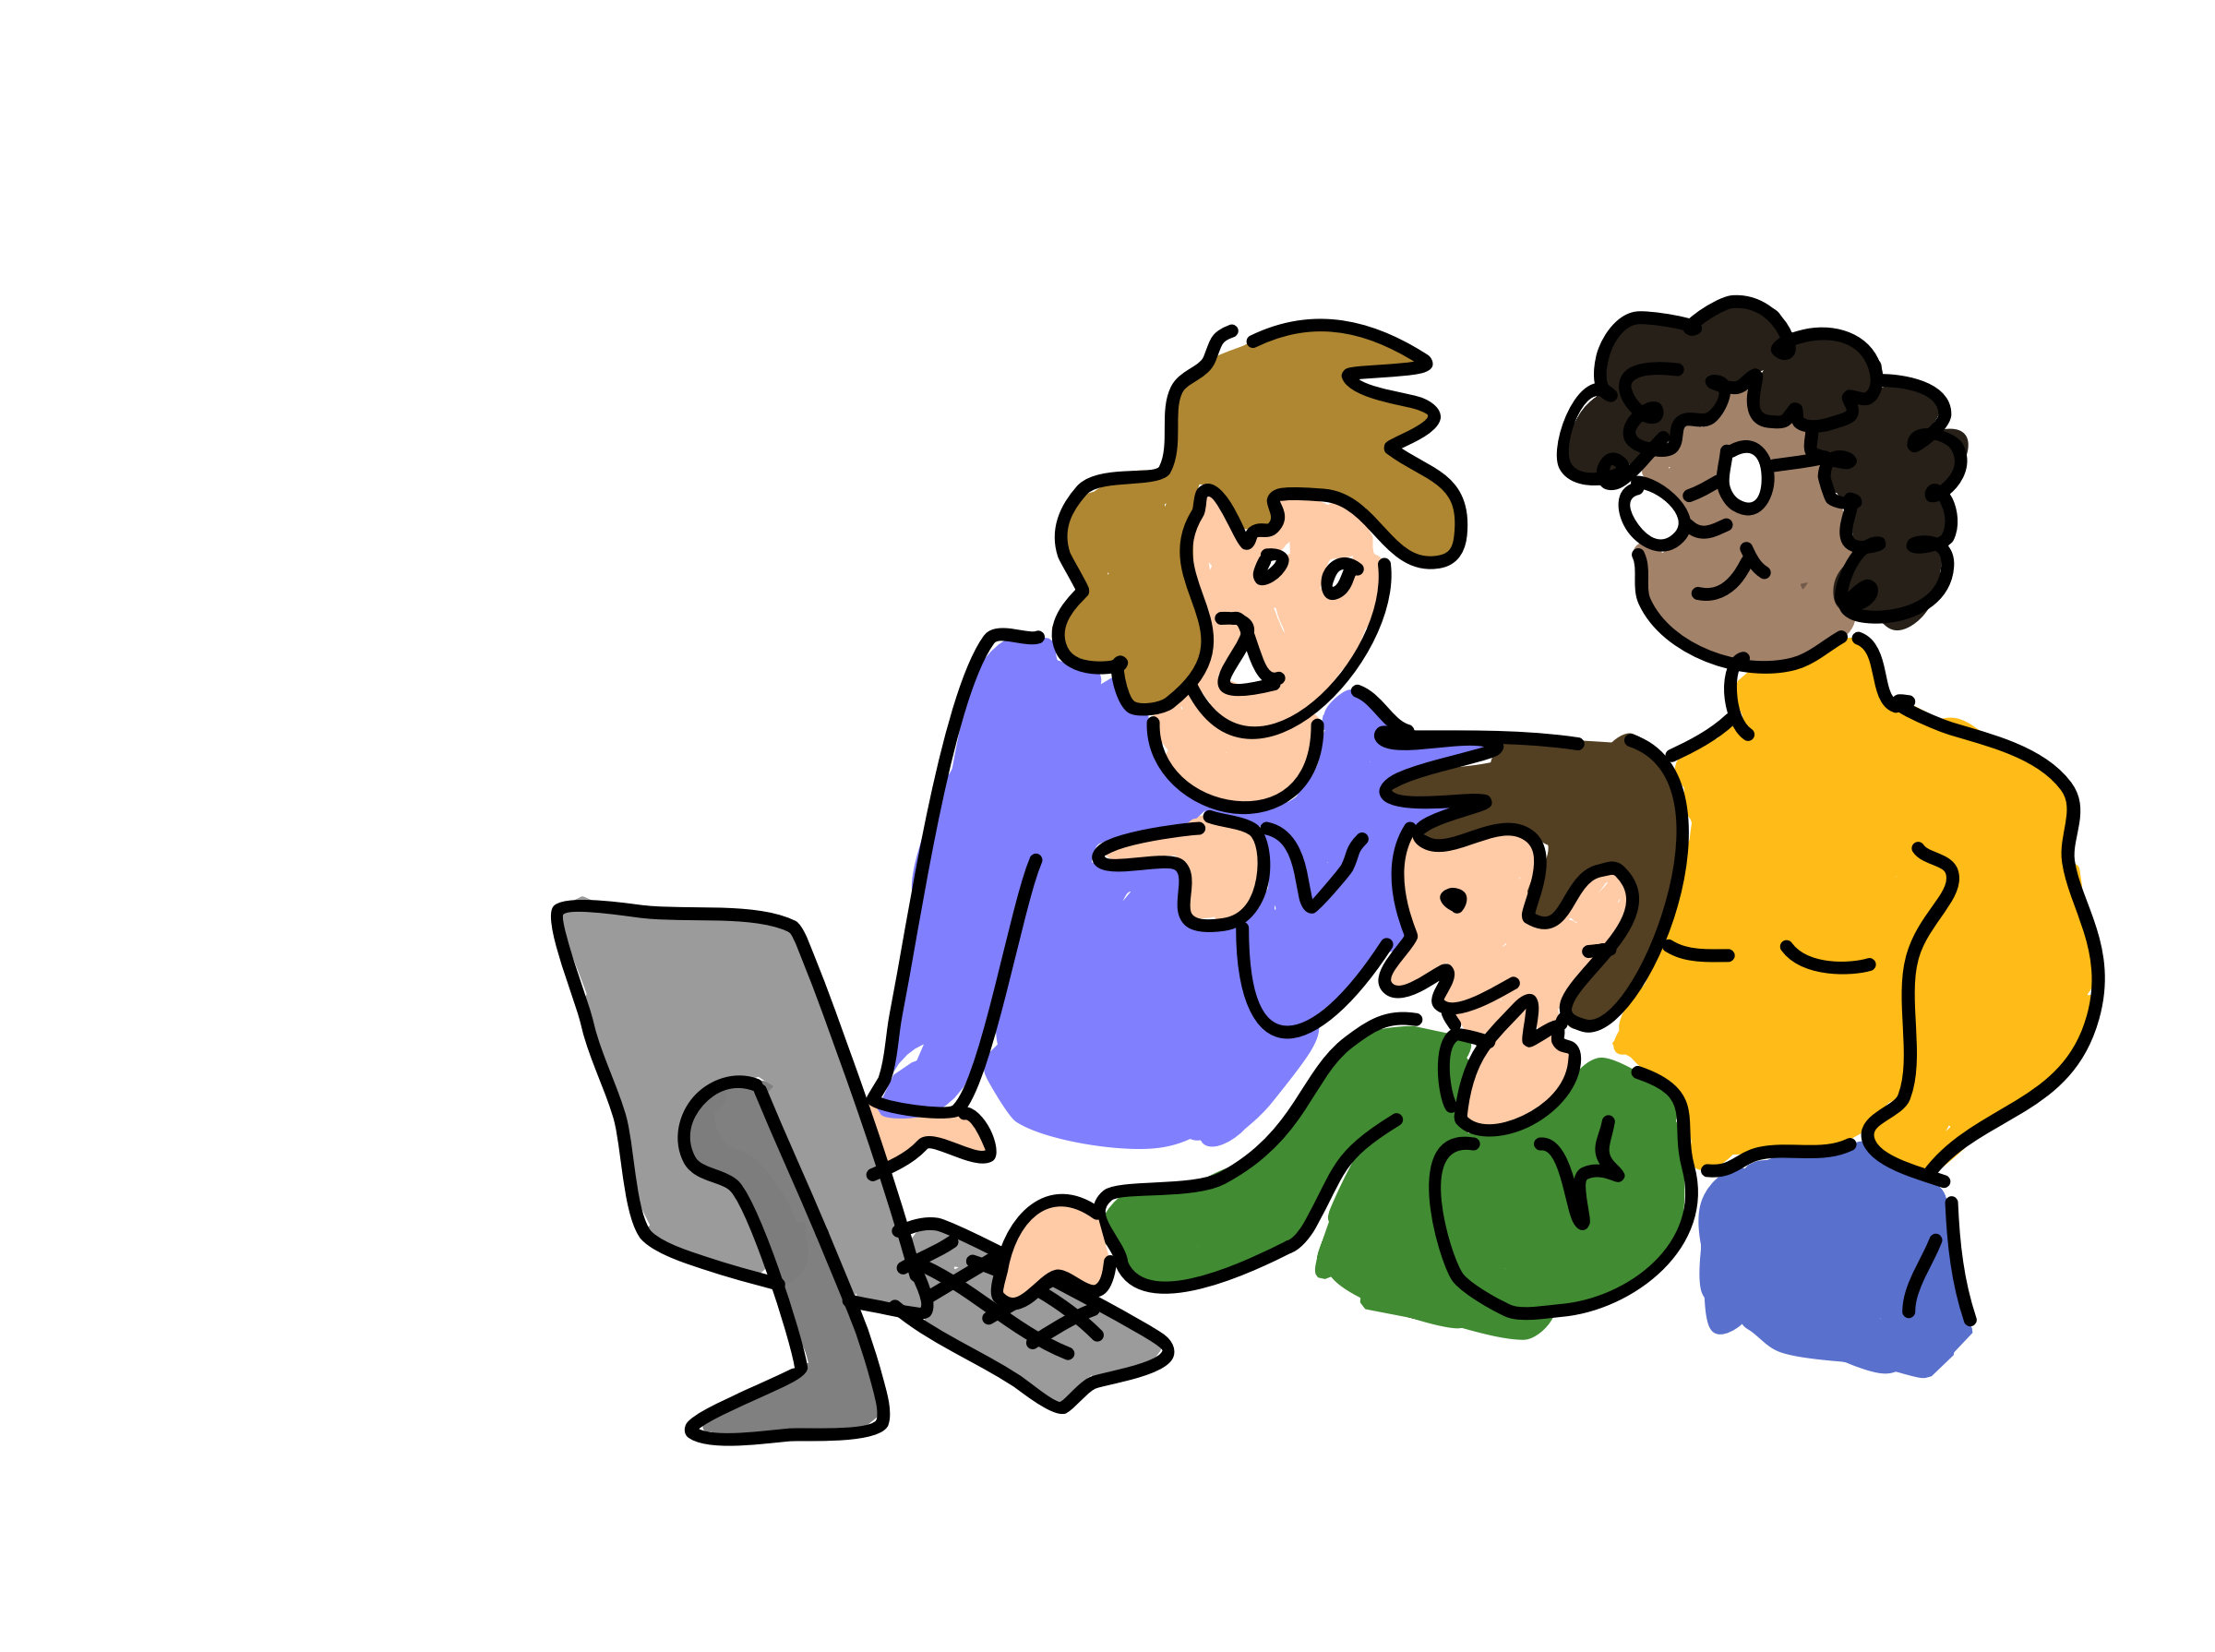 Hd image clipart of three different people together image royalty free library People Working Together PNG Transparent People Working Together.PNG ... image royalty free library